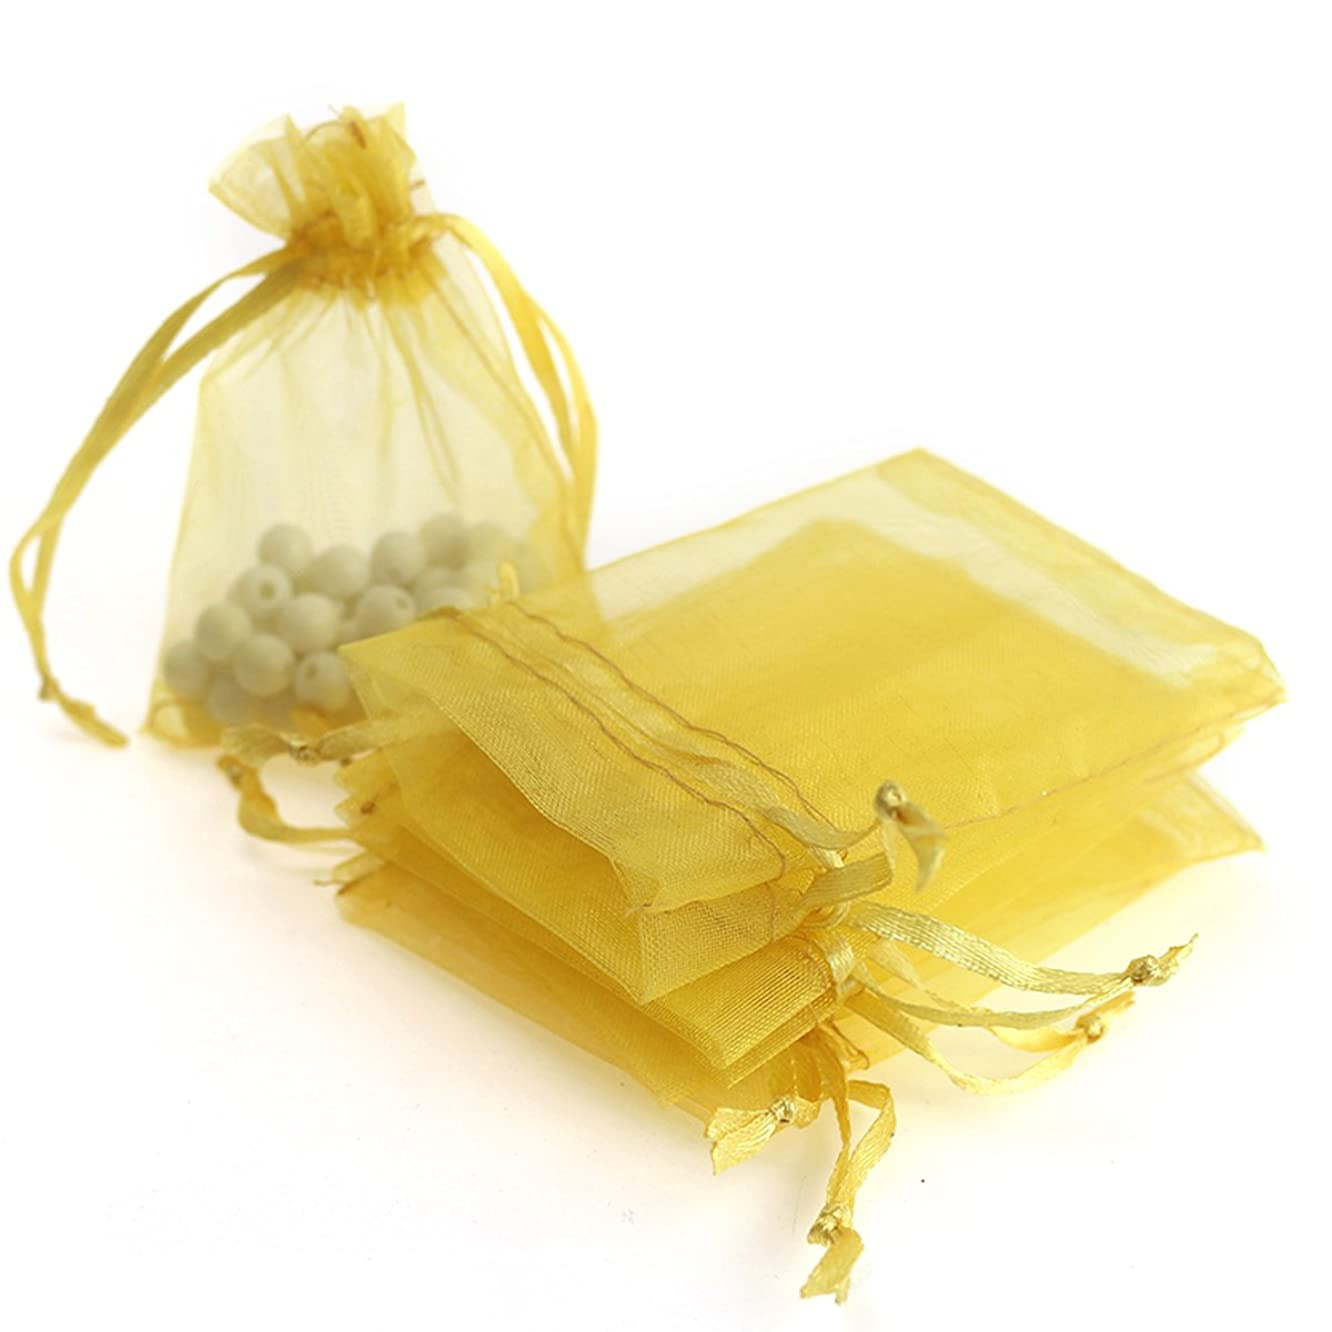 100pcs 3.6x4.8''(9x12cm) Organza Gift Bags, Drawstring Pouches Jewelry Party Wedding Favor Gift Bags,Candy Bags. (Golden)